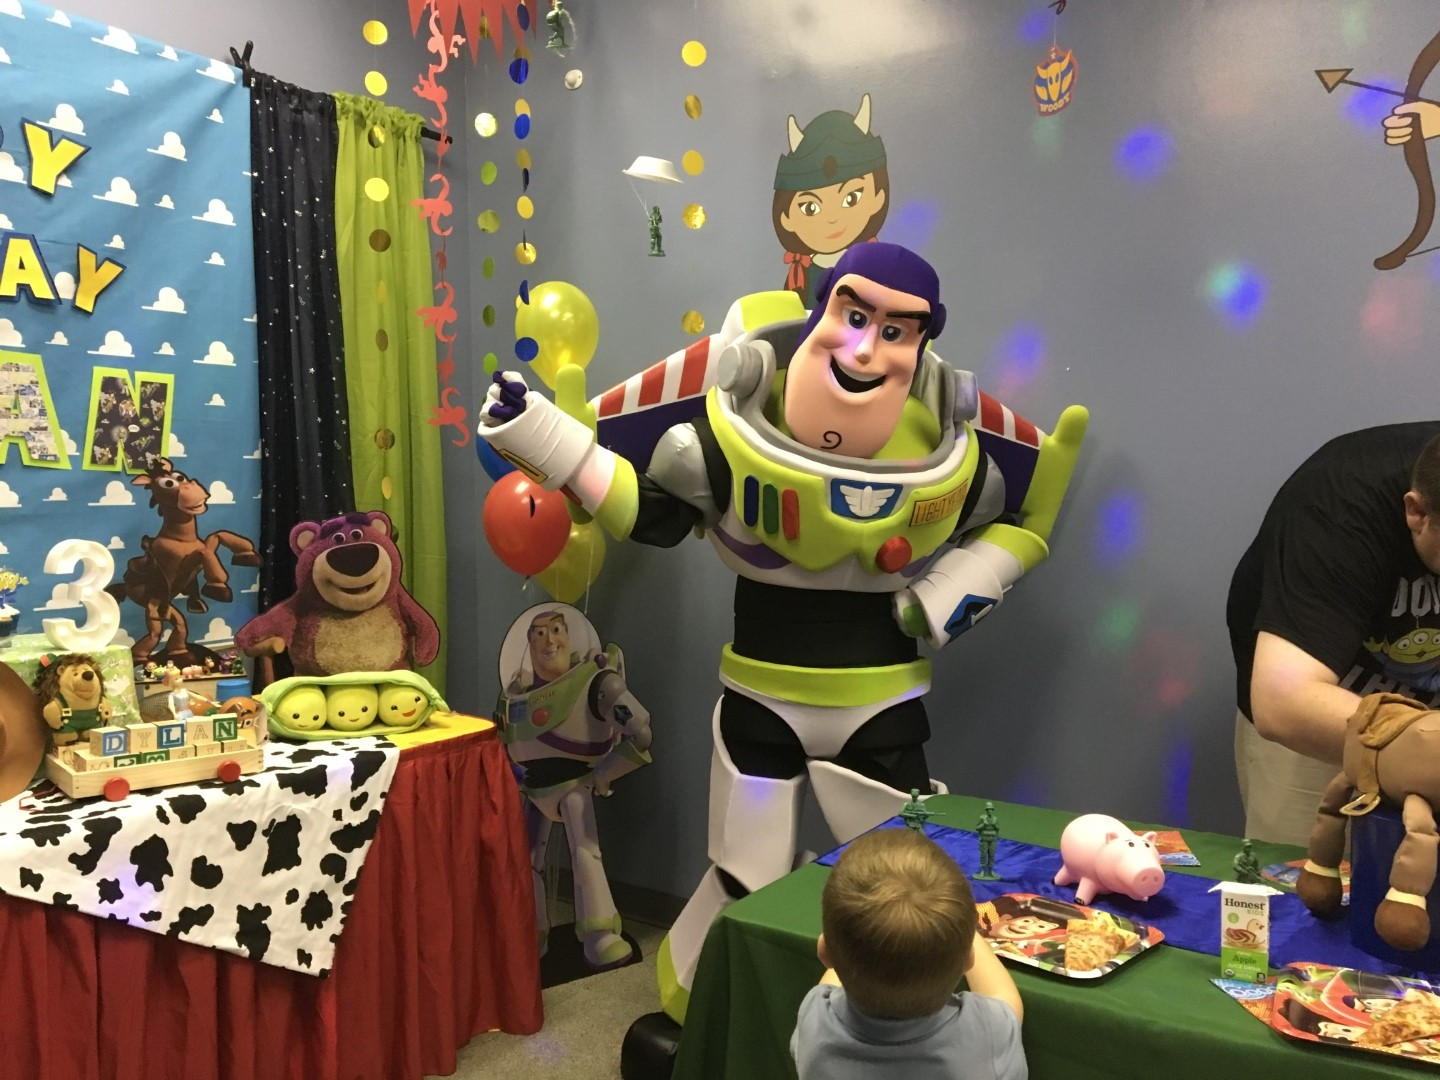 Toy Story Theme 3 Year Old Birthday Party Orlando FL